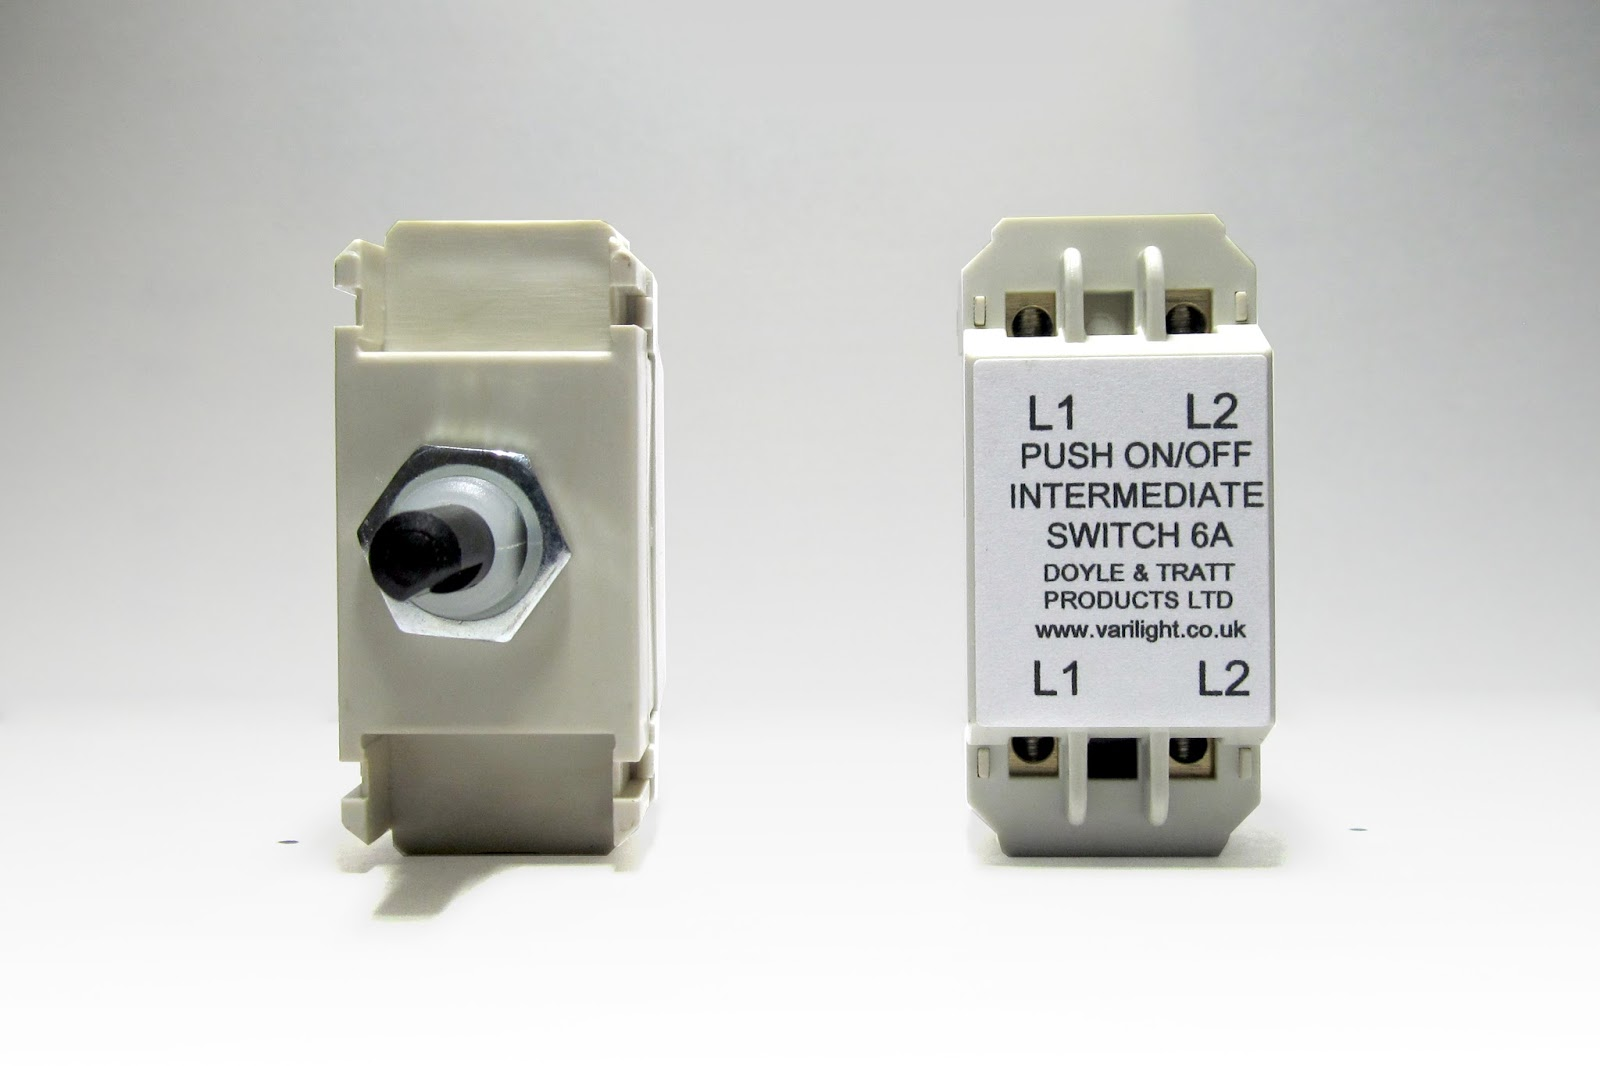 Welcome to the VARILIGHT News Page: Intermediate Push On/Off Switch